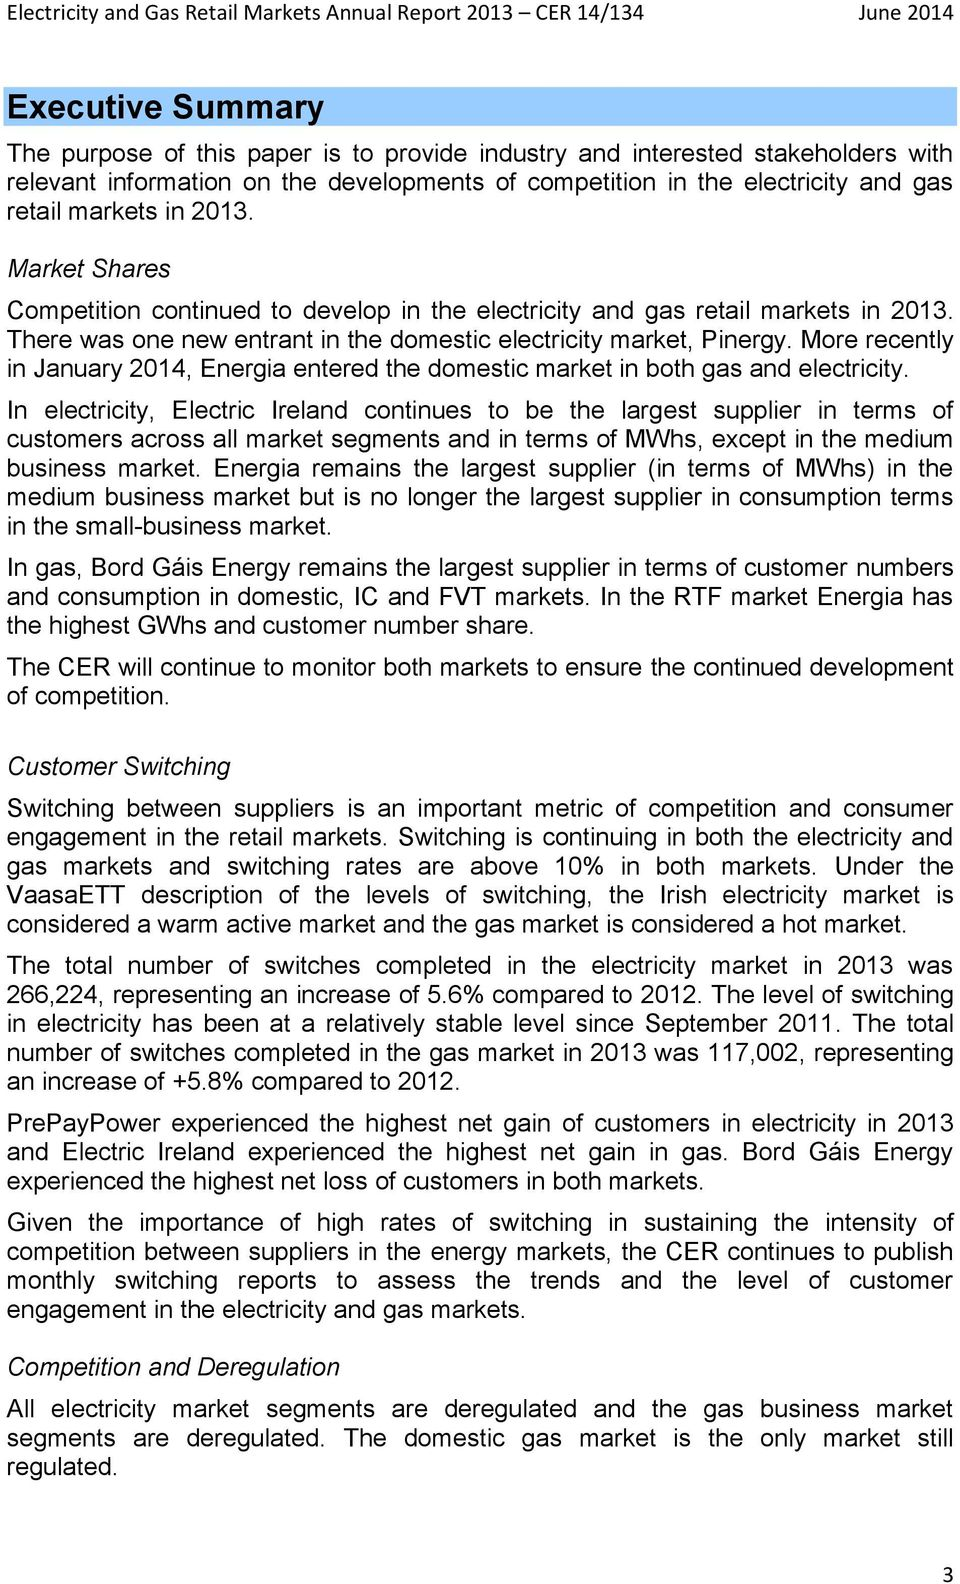 More recently in January 2014, Energia entered the domestic market in both gas and electricity.